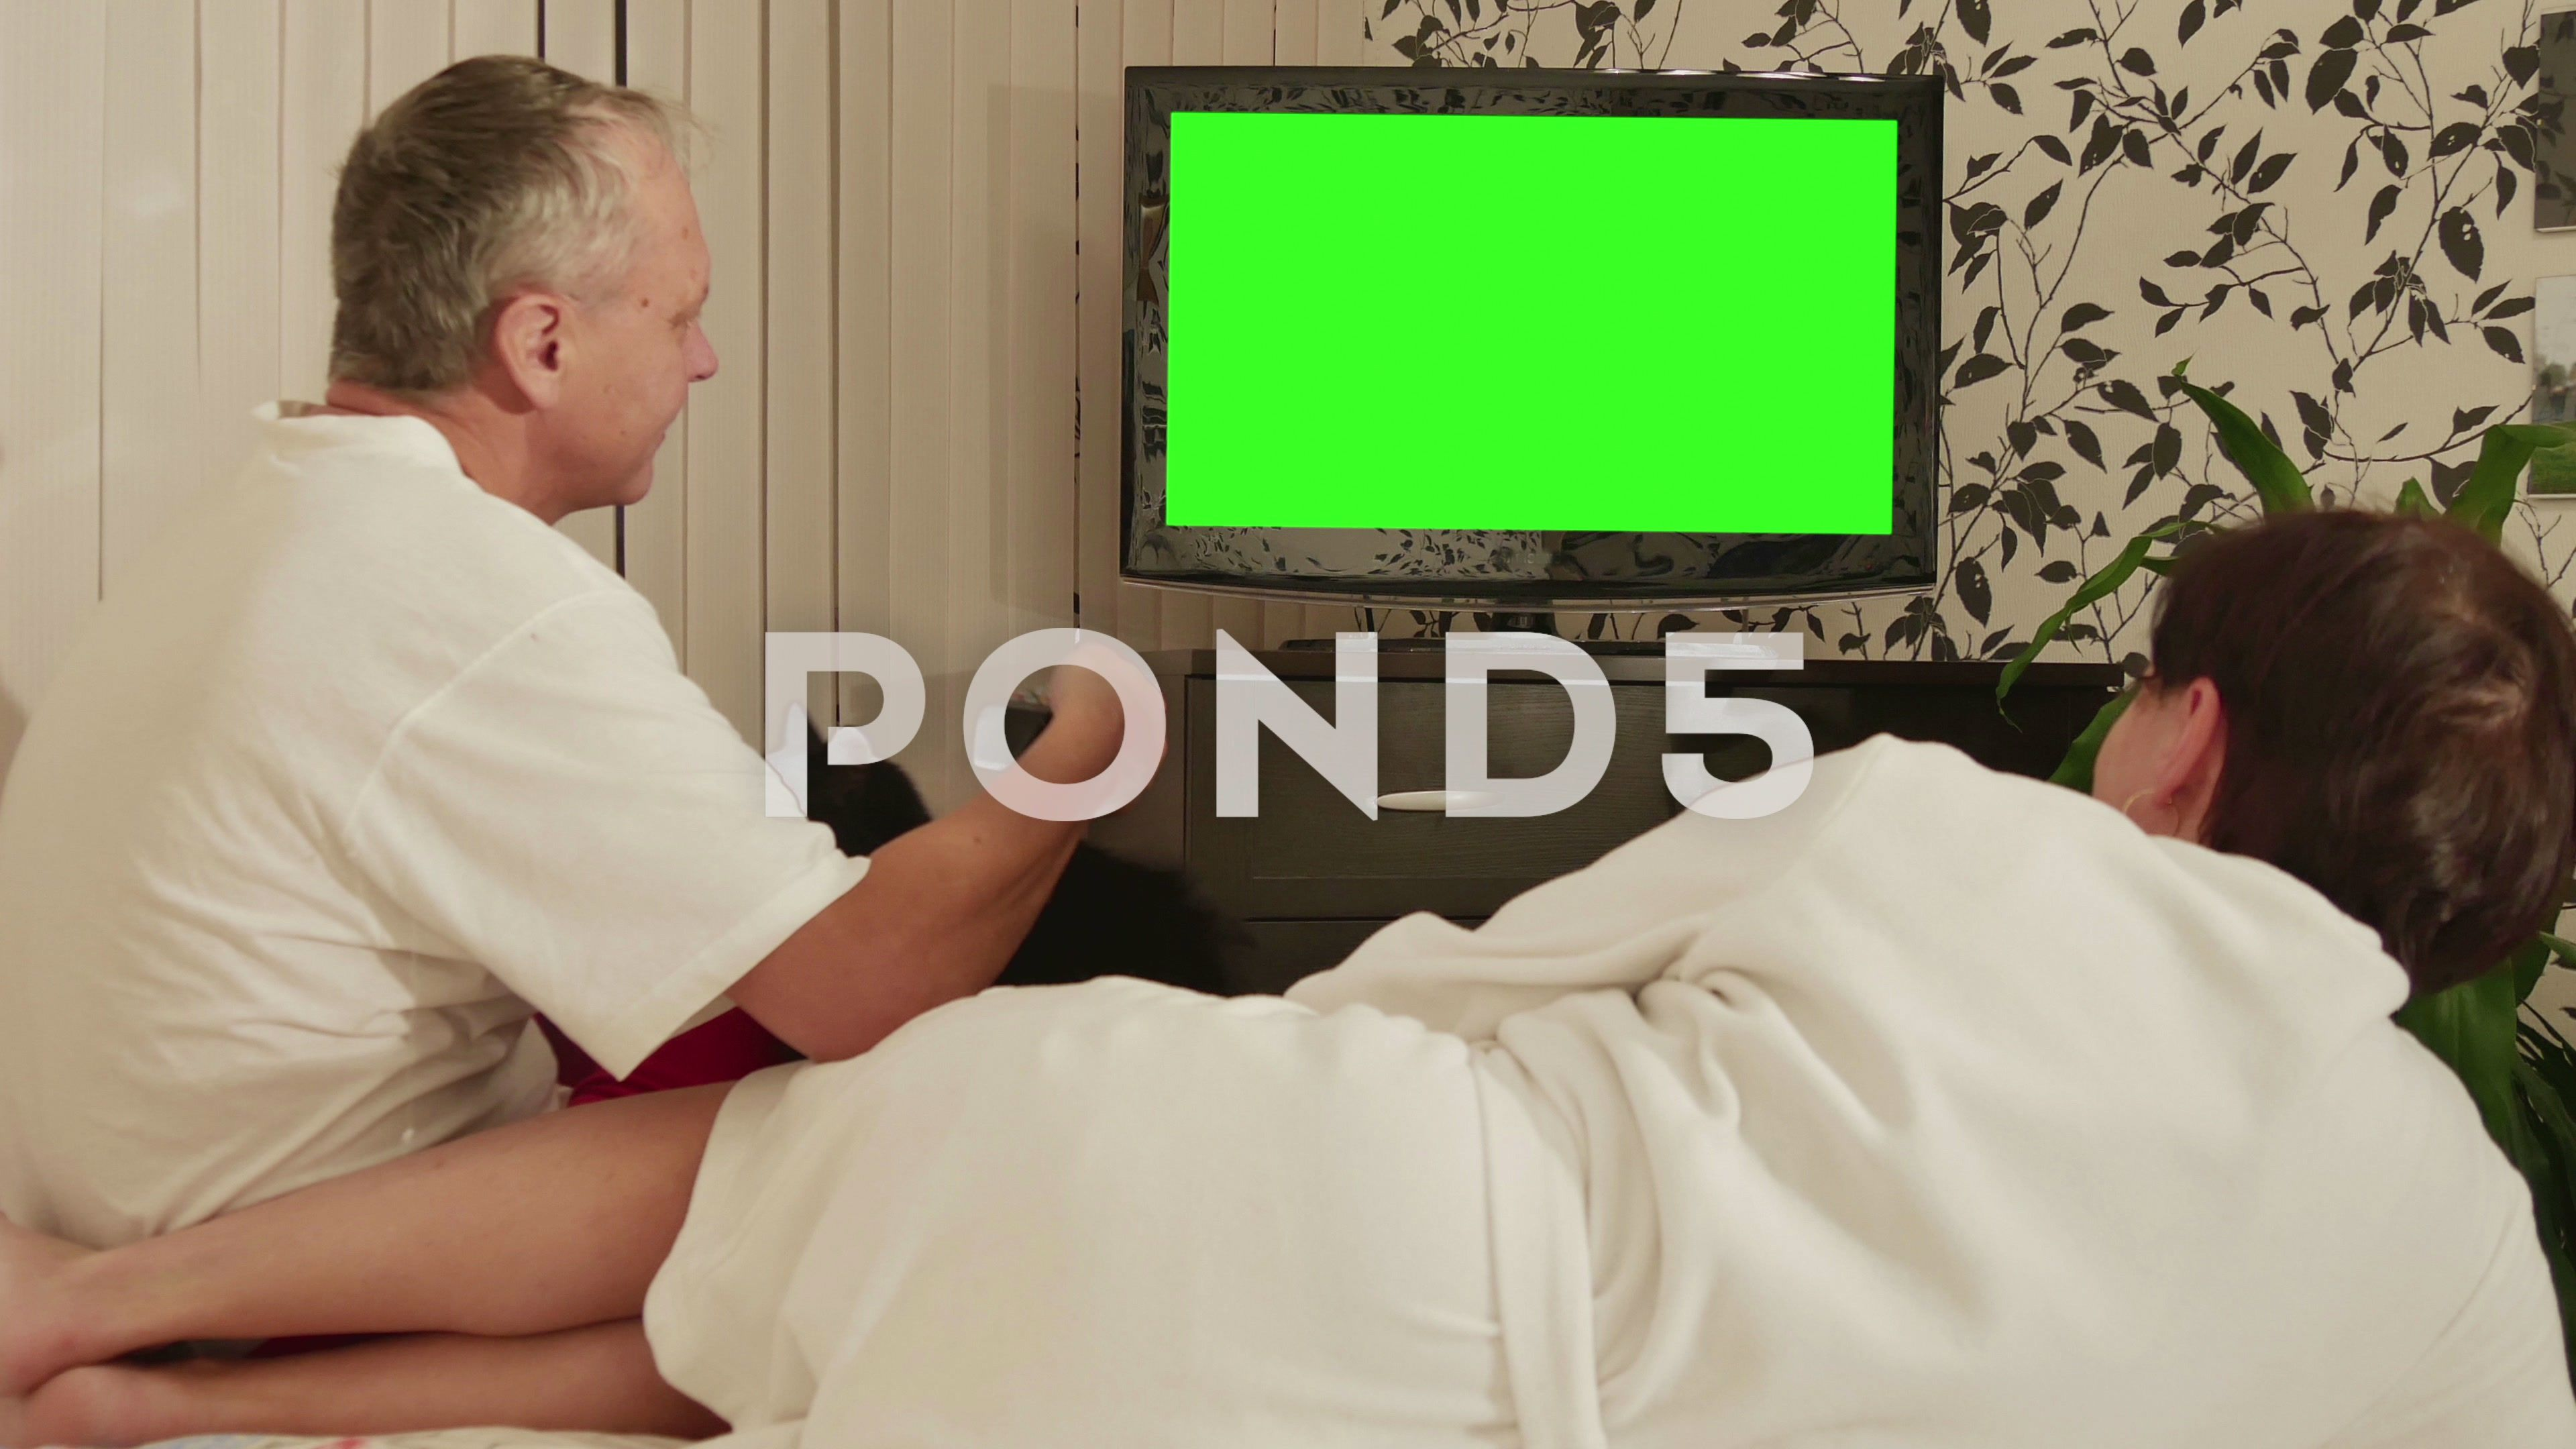 Couple Sitting On The Couch And Watching Tv With Green Screen